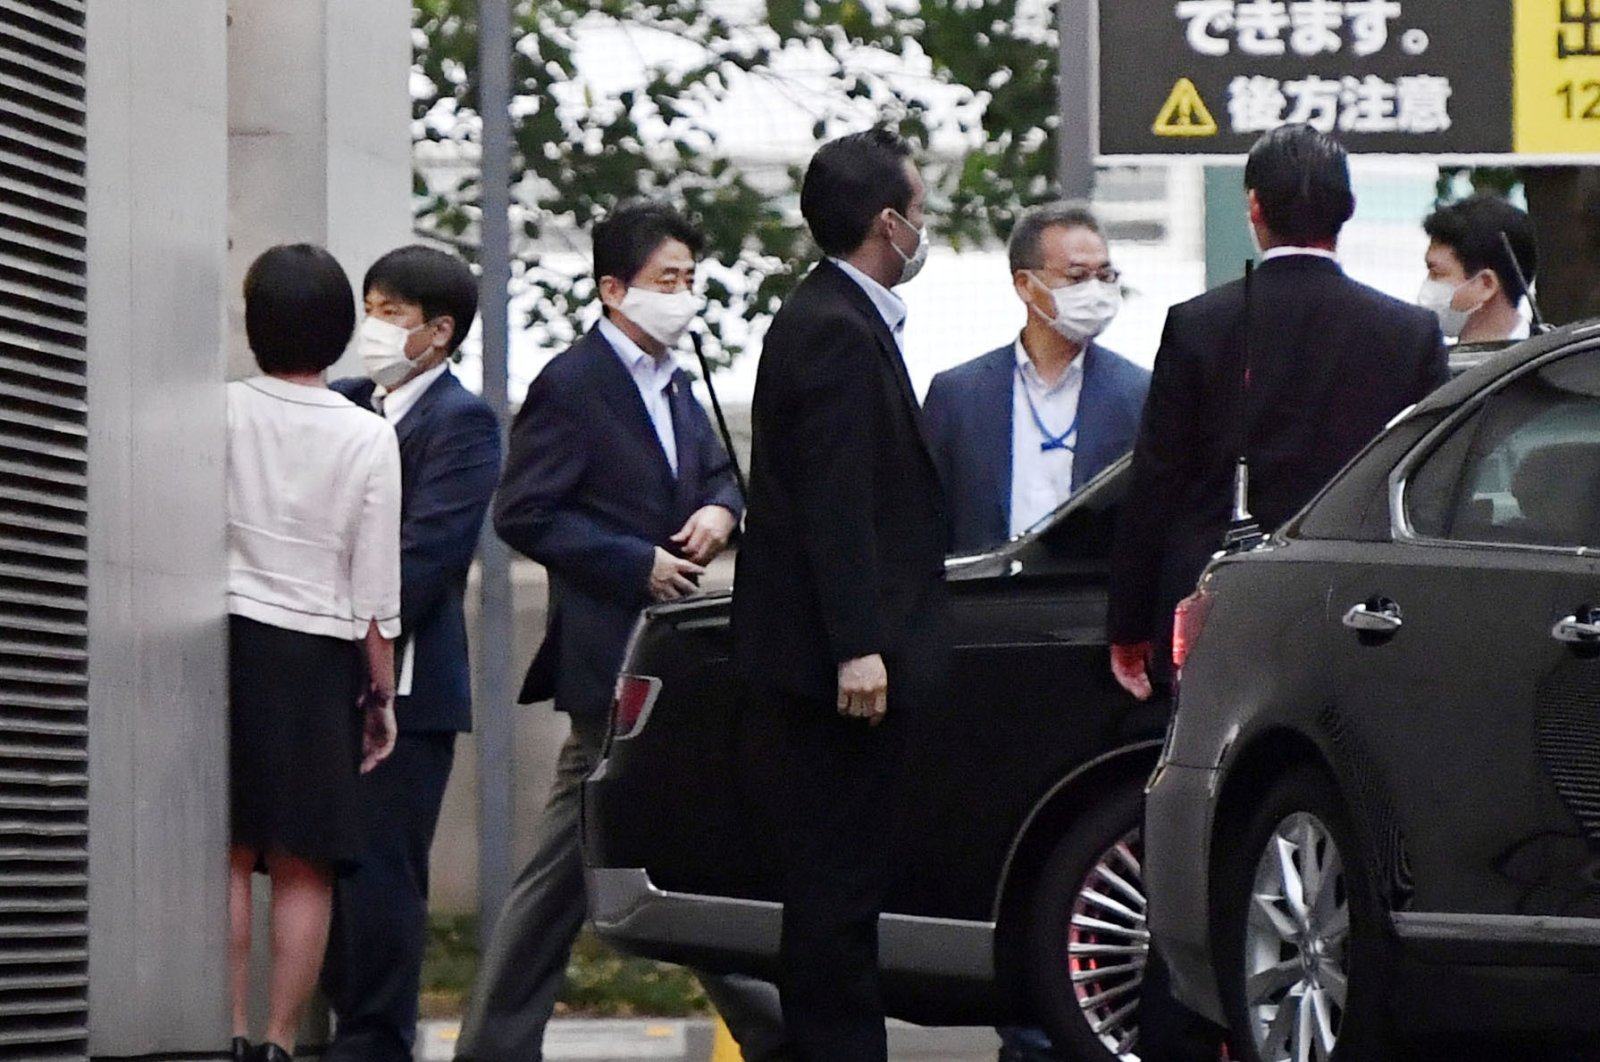 Japanese Prime Minister Shinzo Abe gets into a car as he leaves from Keio University Hospital in Tokyo, Japan, in this photo taken by Kyodo, August 17, 2020. (Kyodo Photo via Reuters)